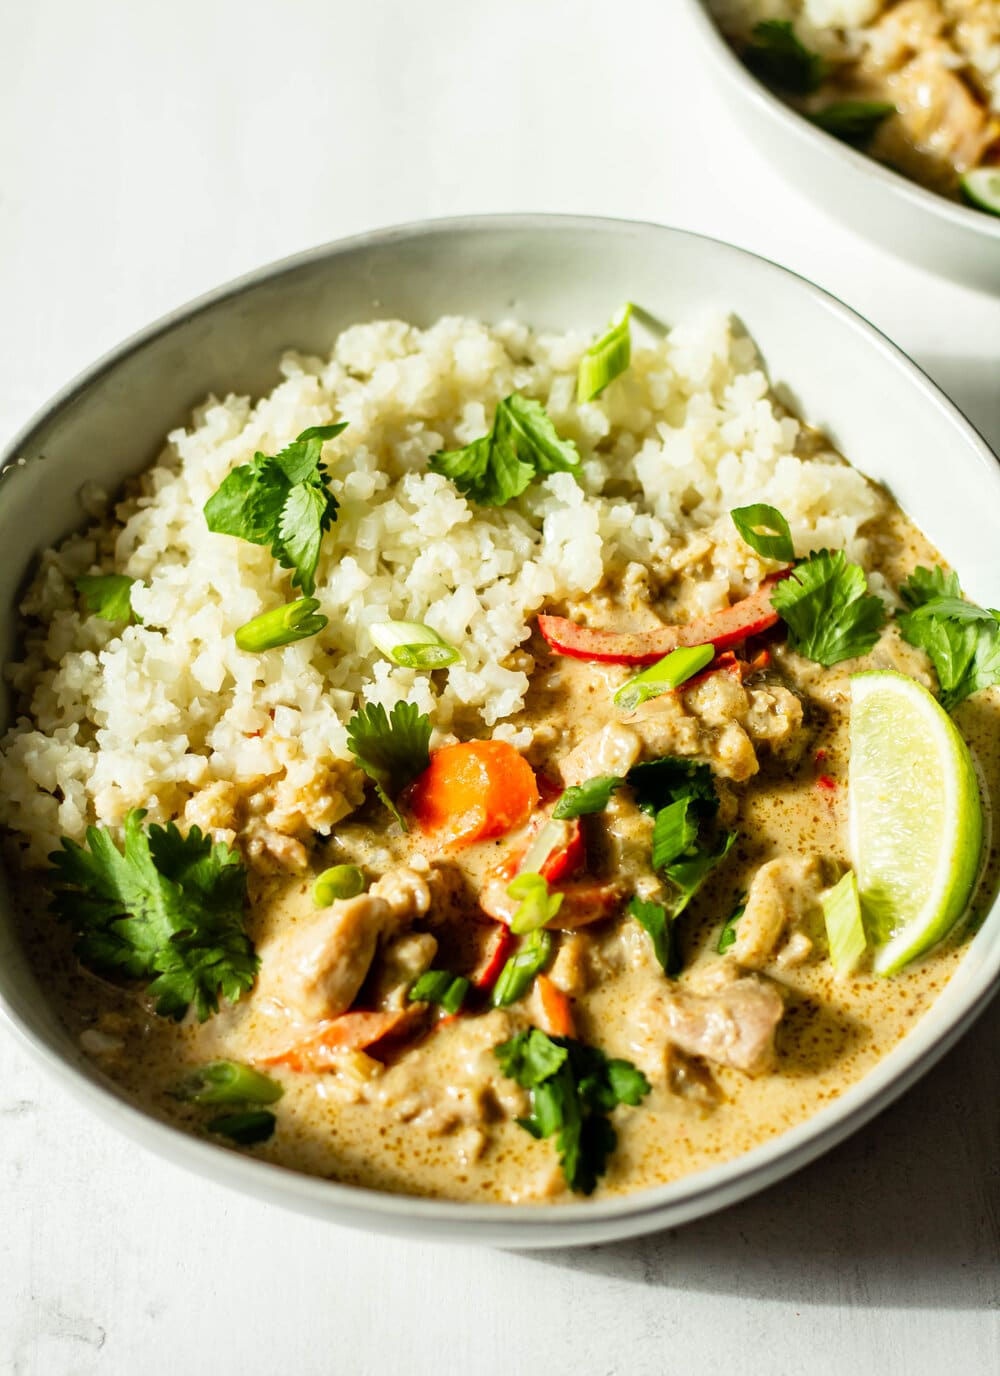 Thai Green Curry with Chicken and Vegetables